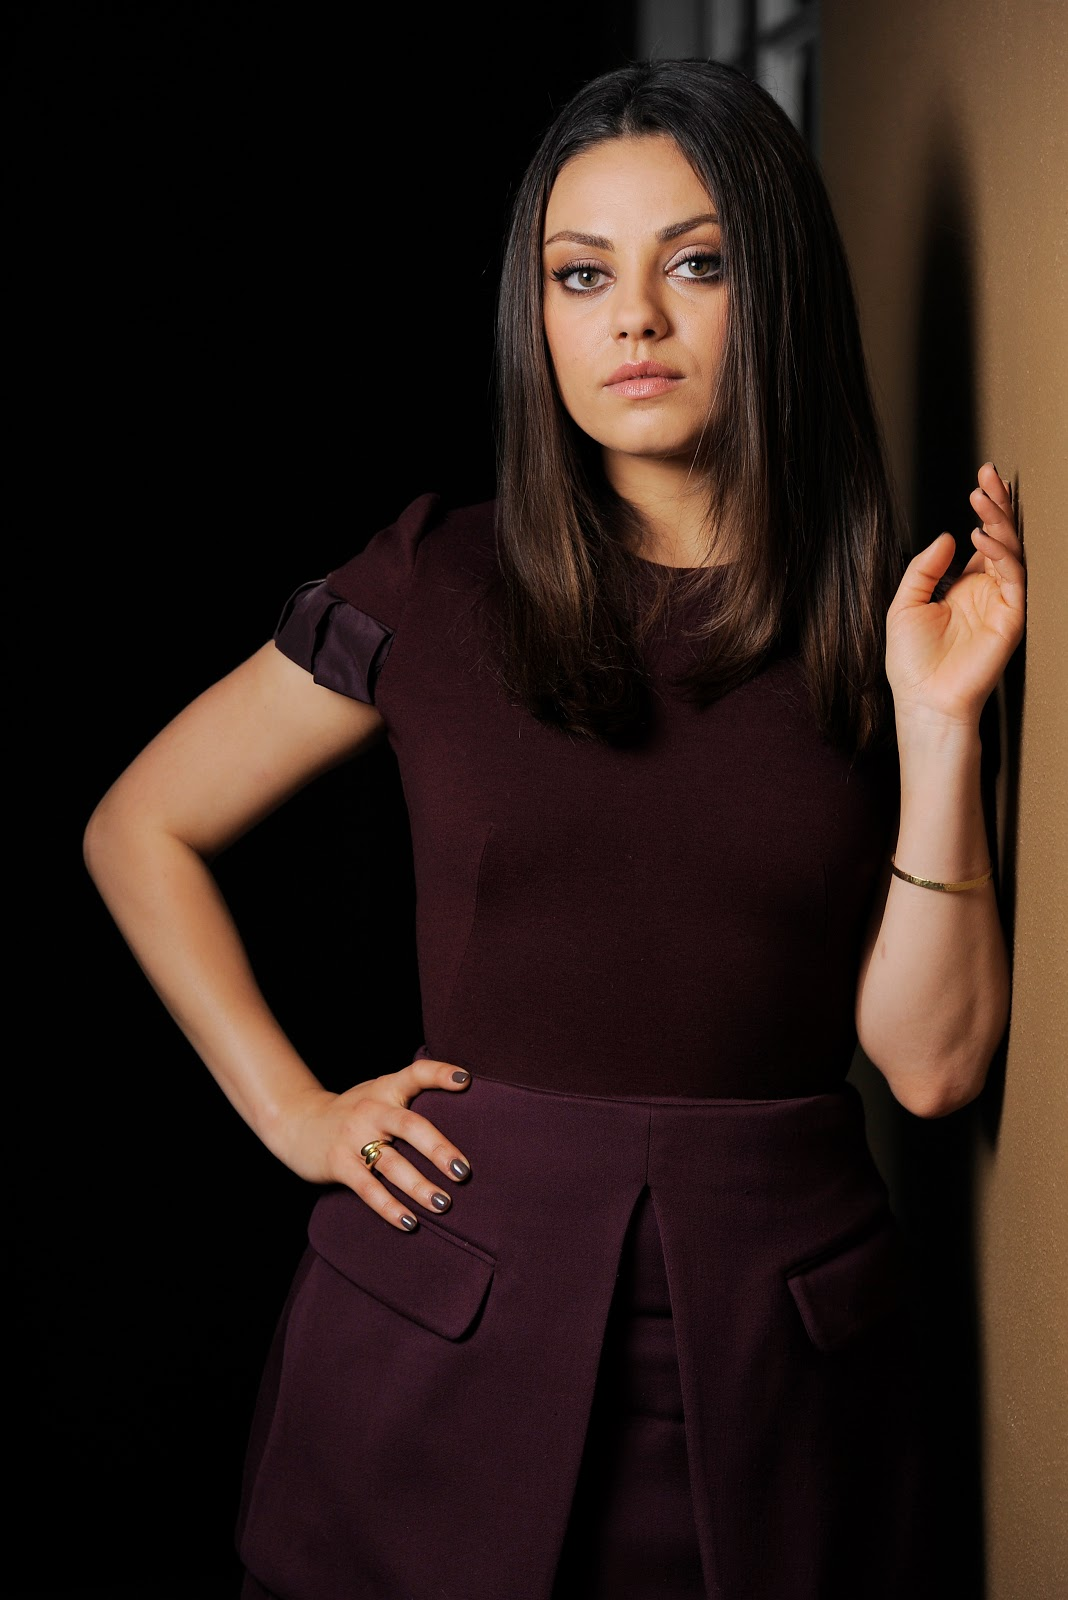 Mila Kunis – TED Photocall Full HD Images